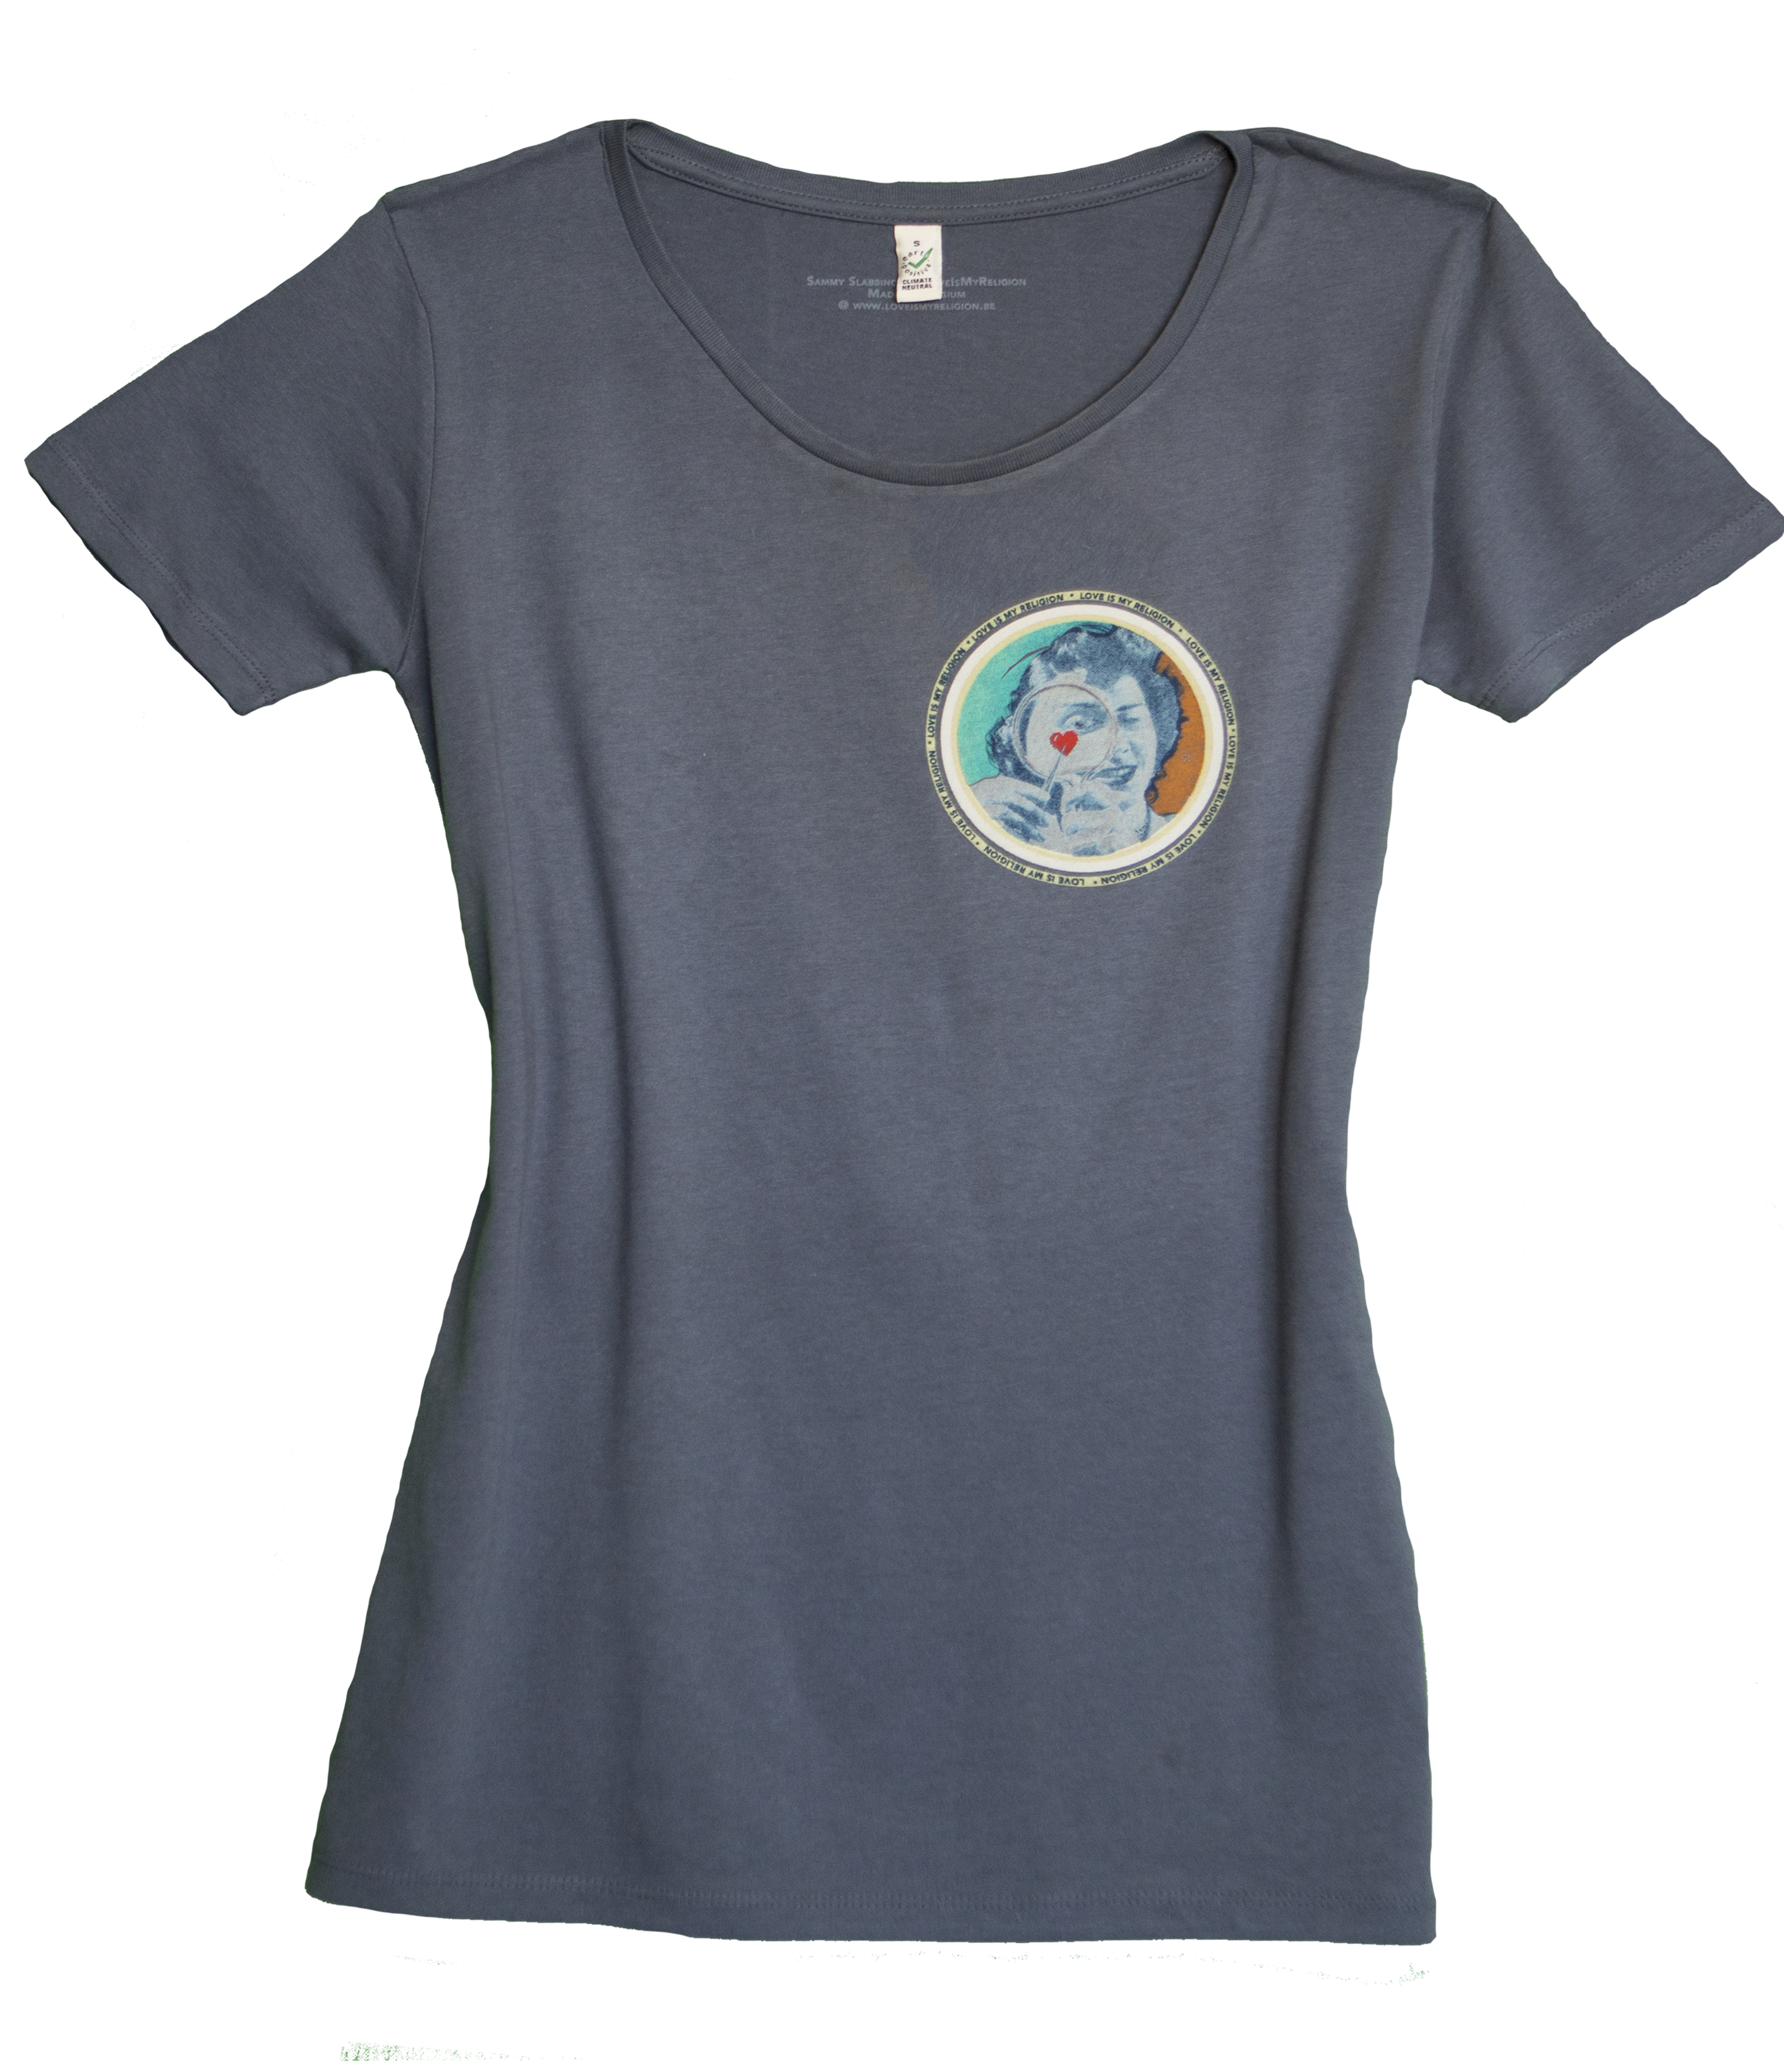 Climate Neutral organic cotton Girl T-shirt in blue jeans. Design by Sammy Slabbinck.